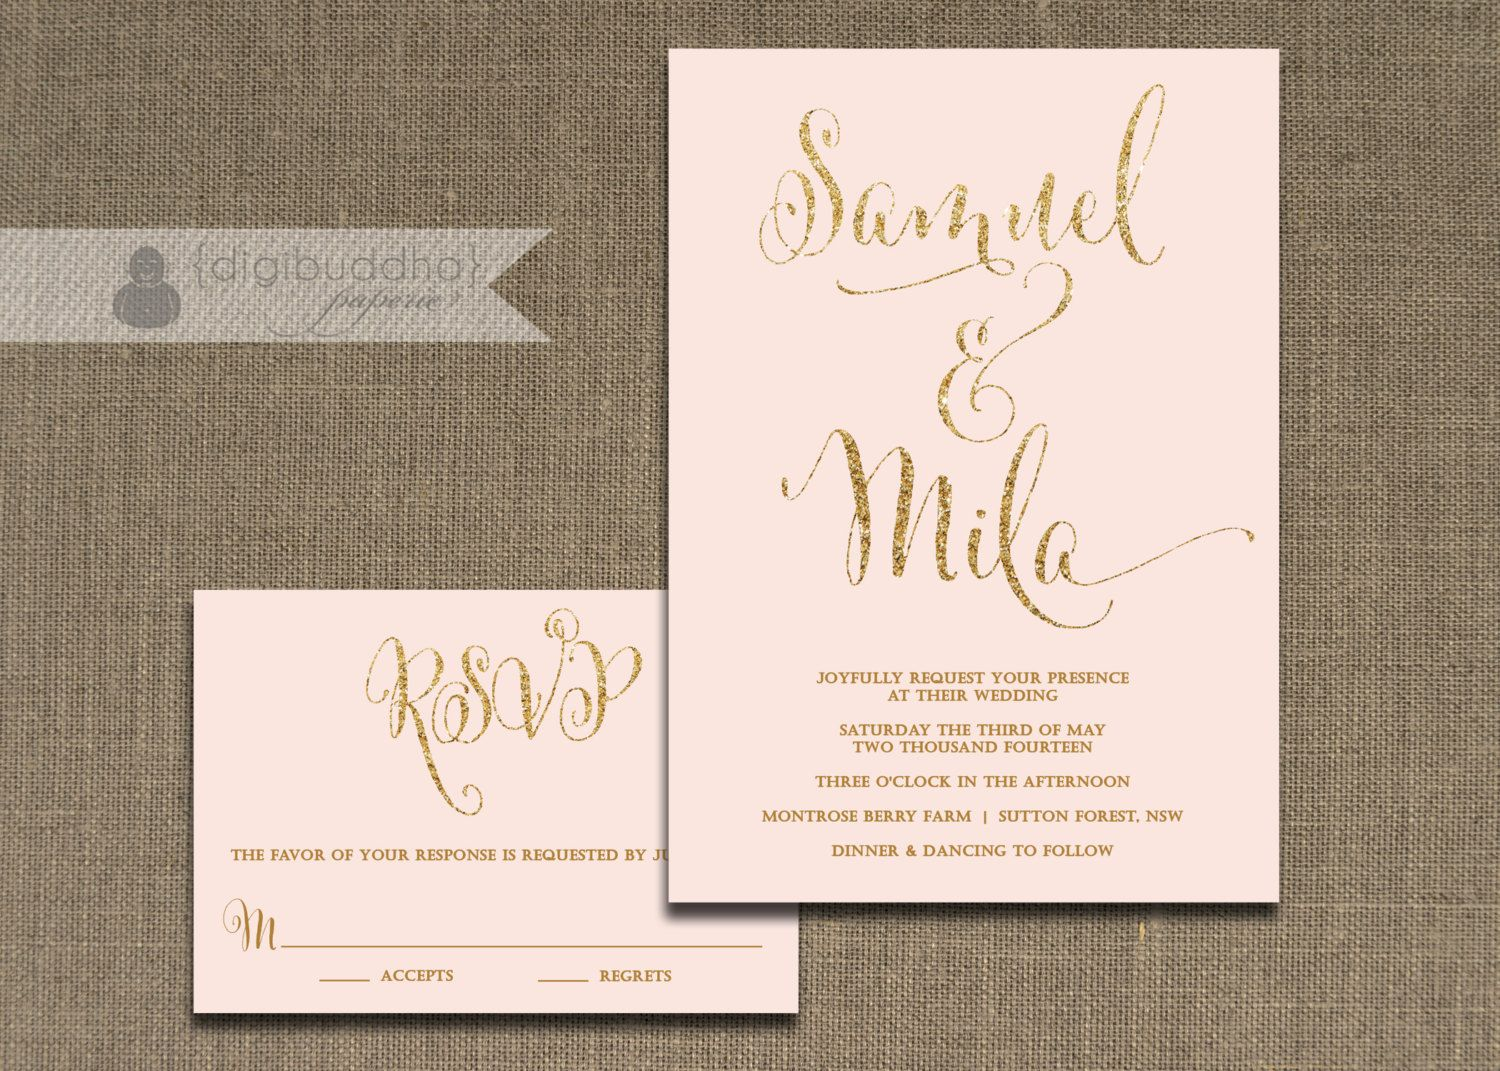 BlushPinkandGoldWeddingInvitation BlushPinkandGoldWeddingInvitation Wedding idea Pinterest